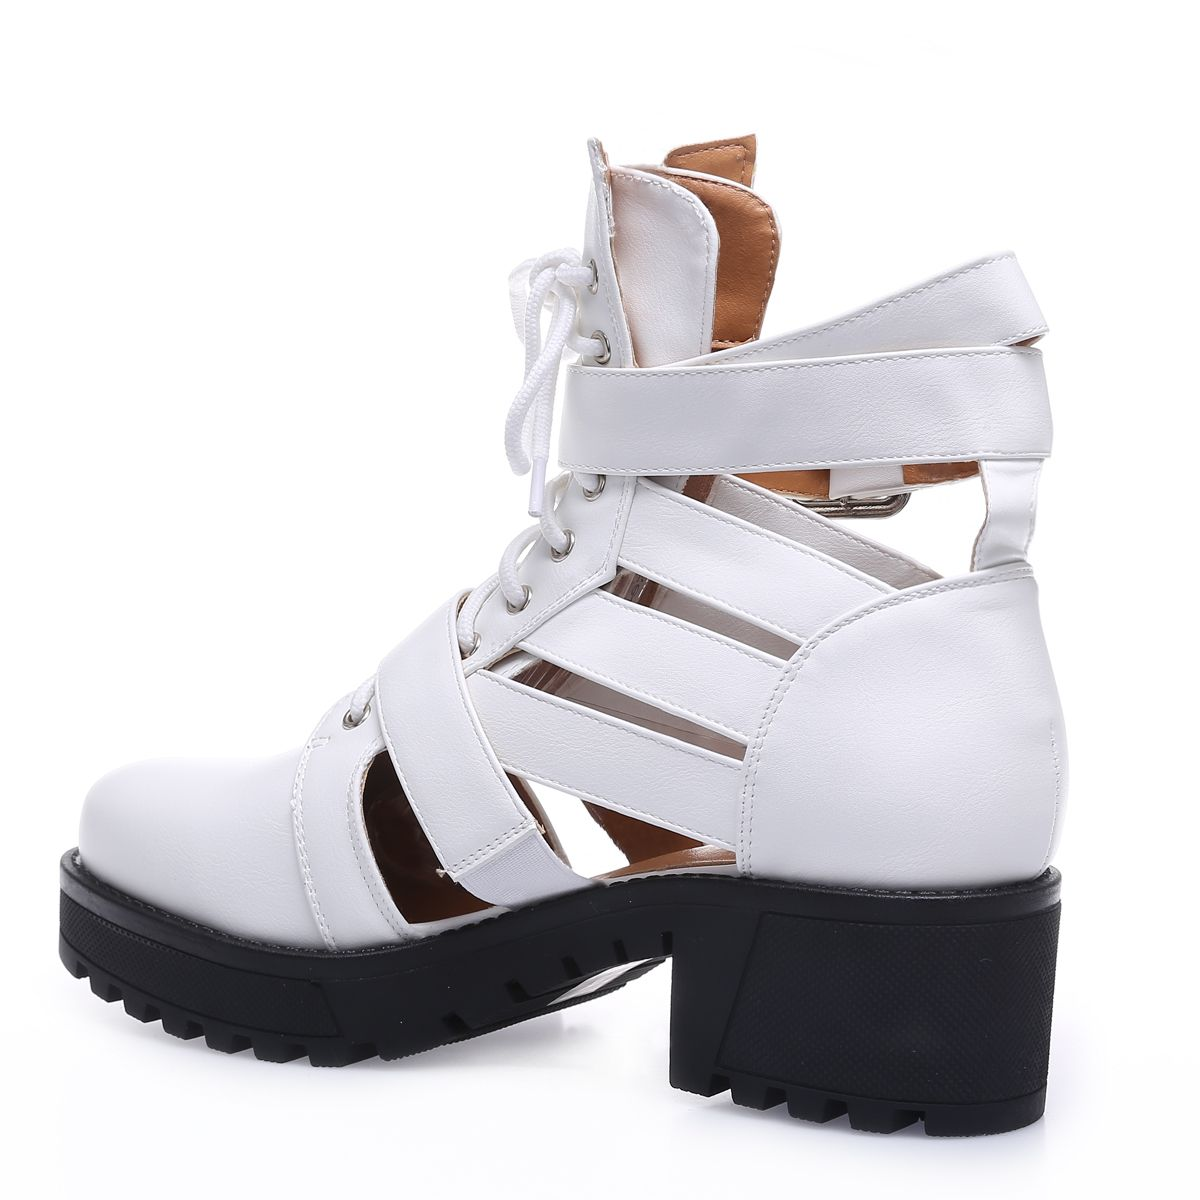 Bottines blanches style rangers ajourées